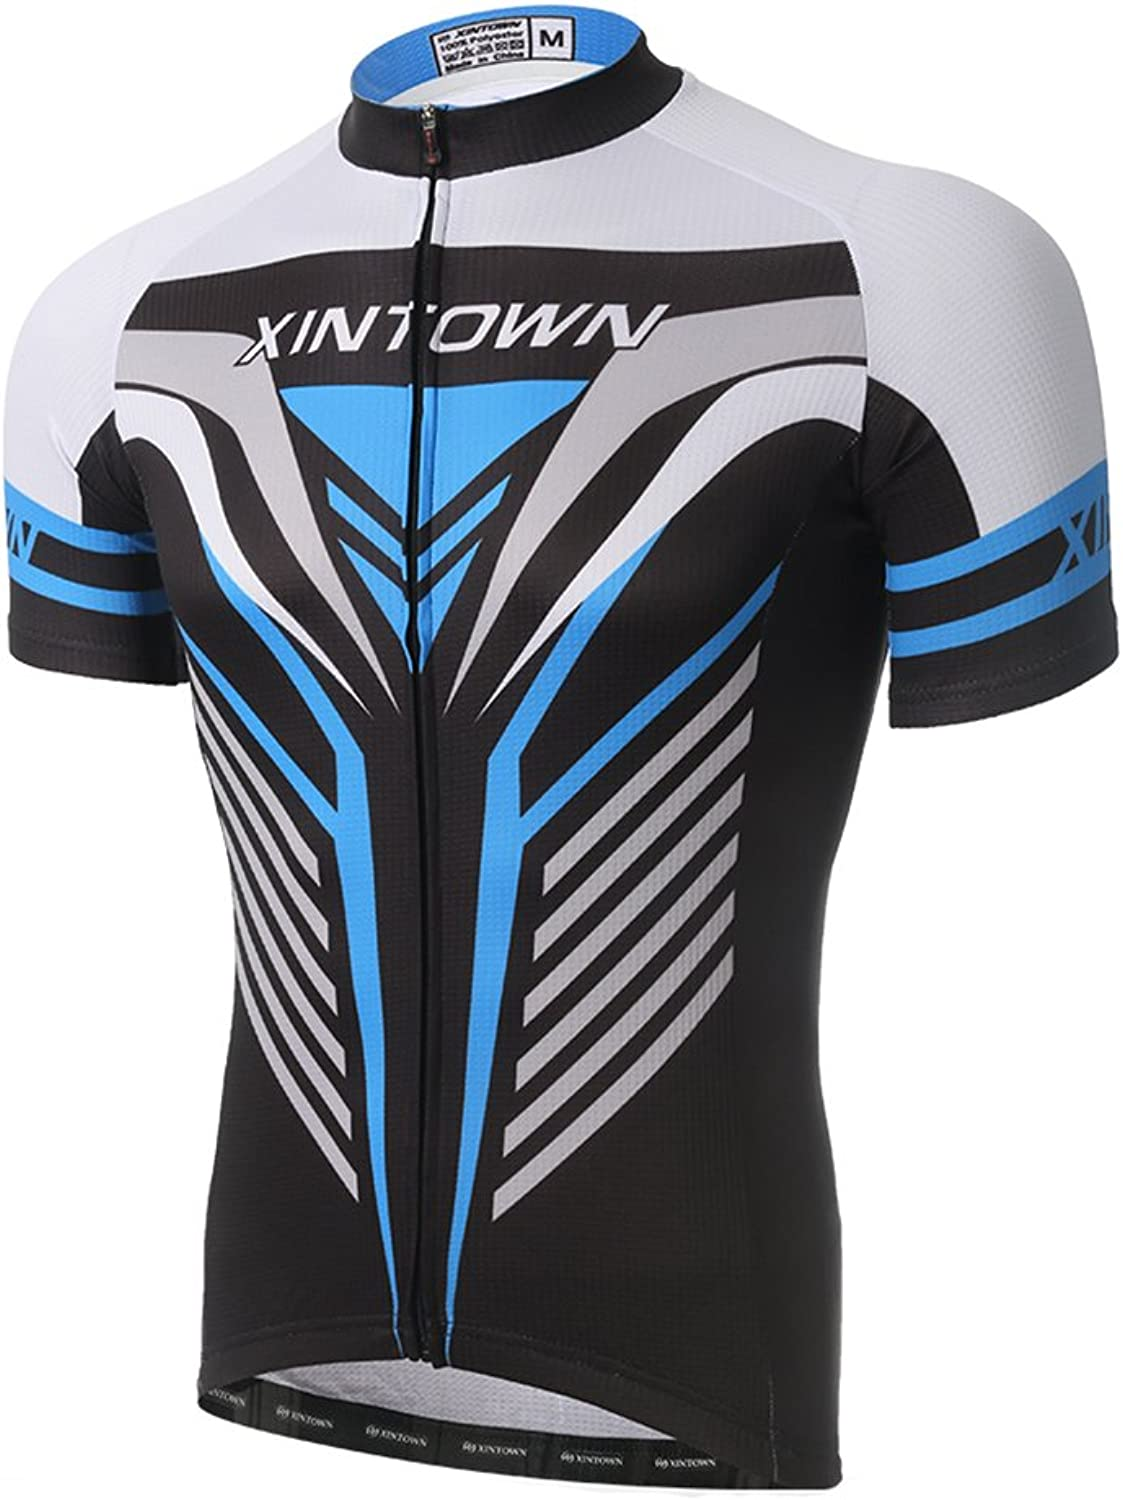 Nawing Bicycle Bike Clothing Unisex Quick Dry Women Cycling Jersey Shirts for Men